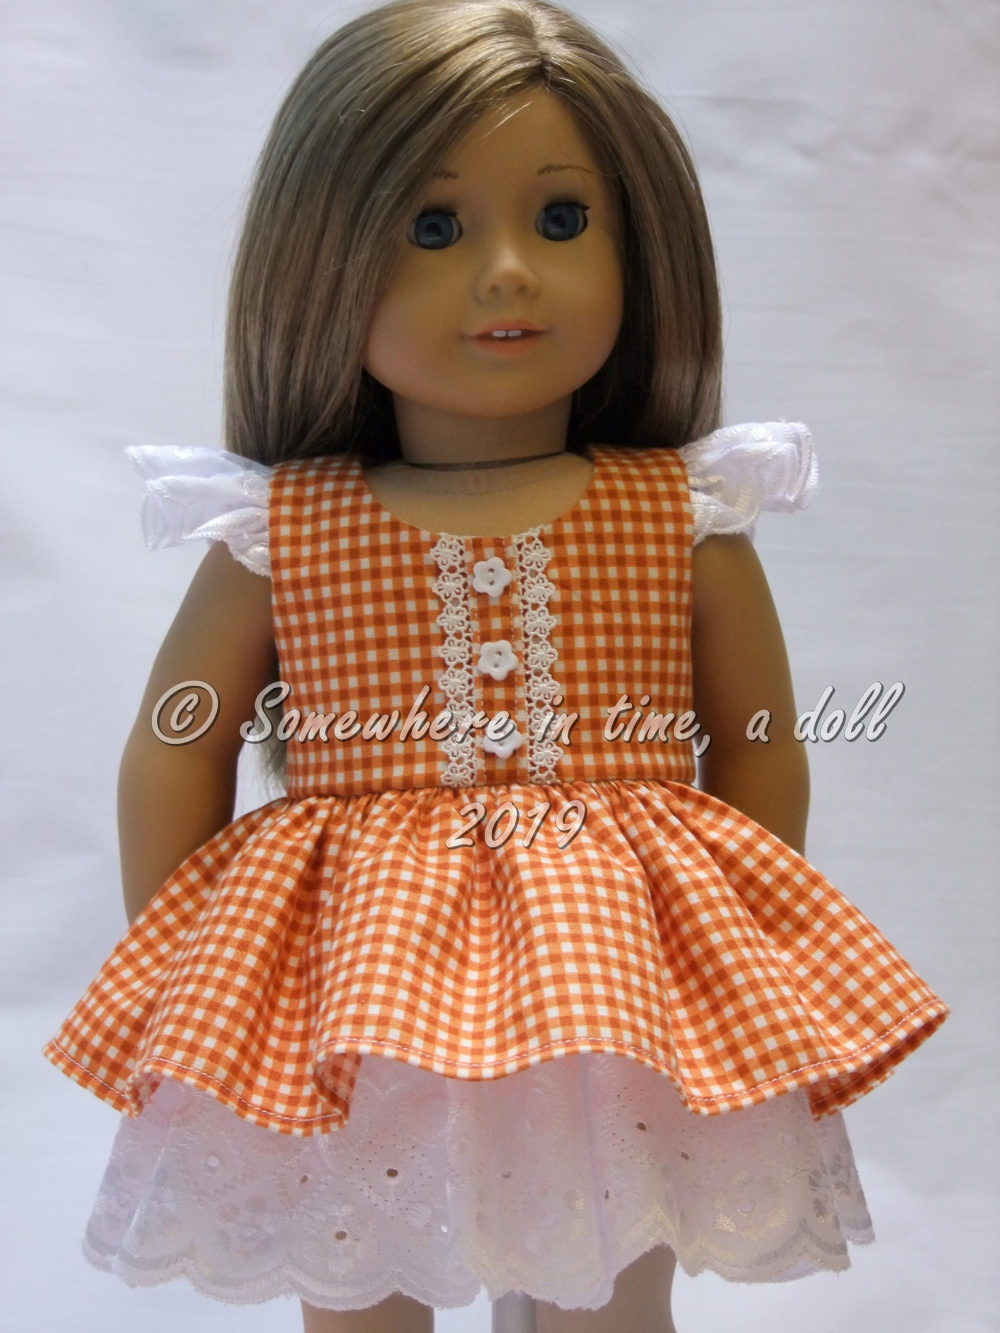 Ruffled party dress for 18-inch dolls such as American Girl or Our Generation #americandolls